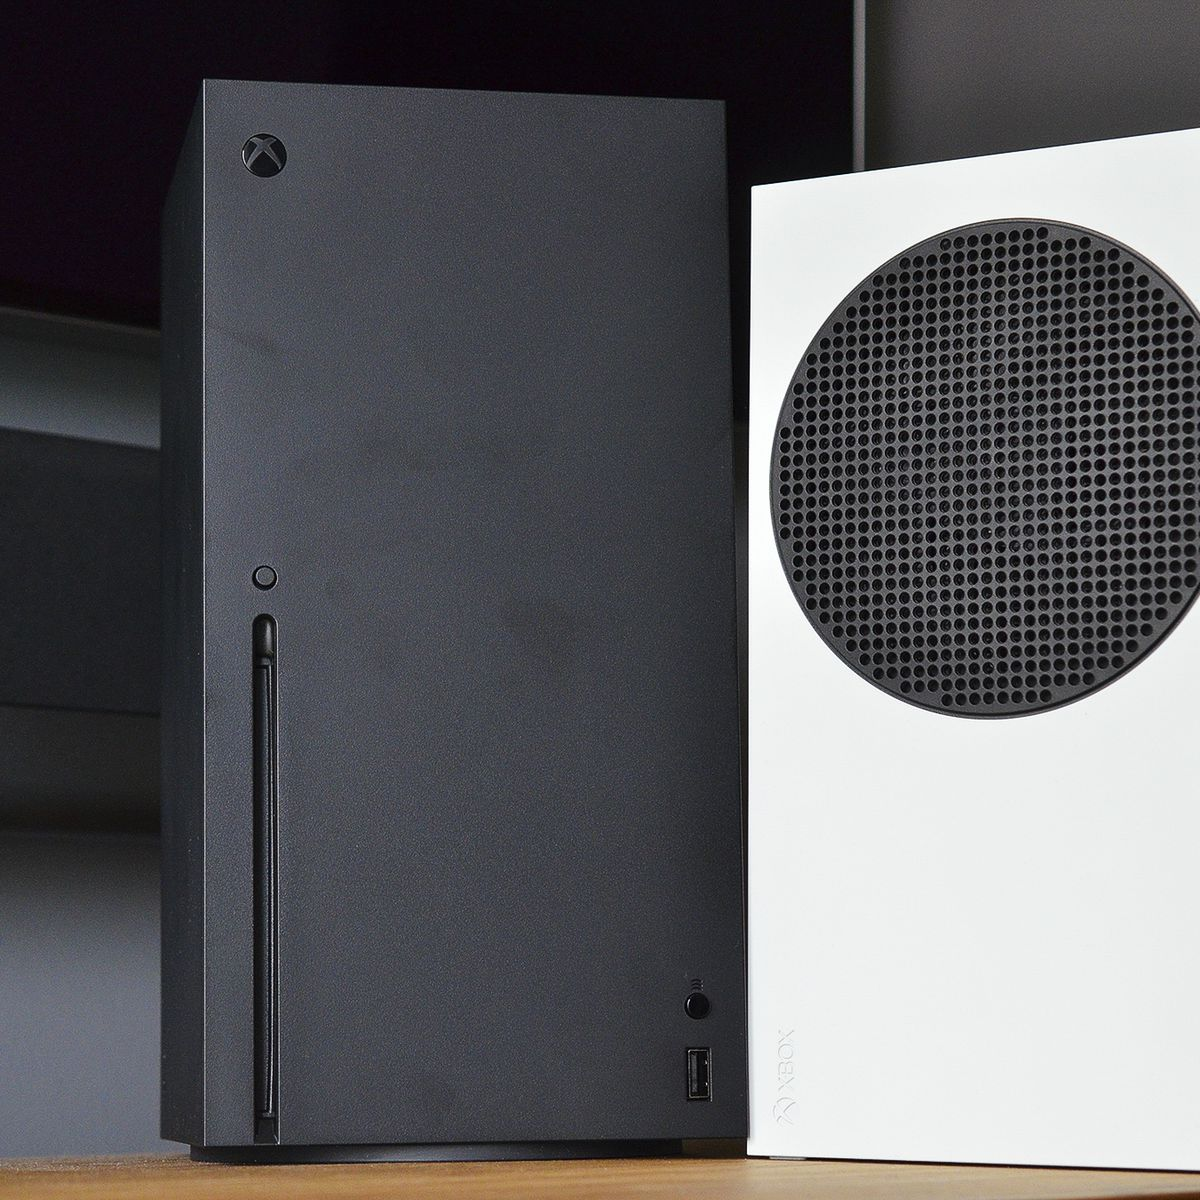 The Xbox Series X and S are available at GameStop